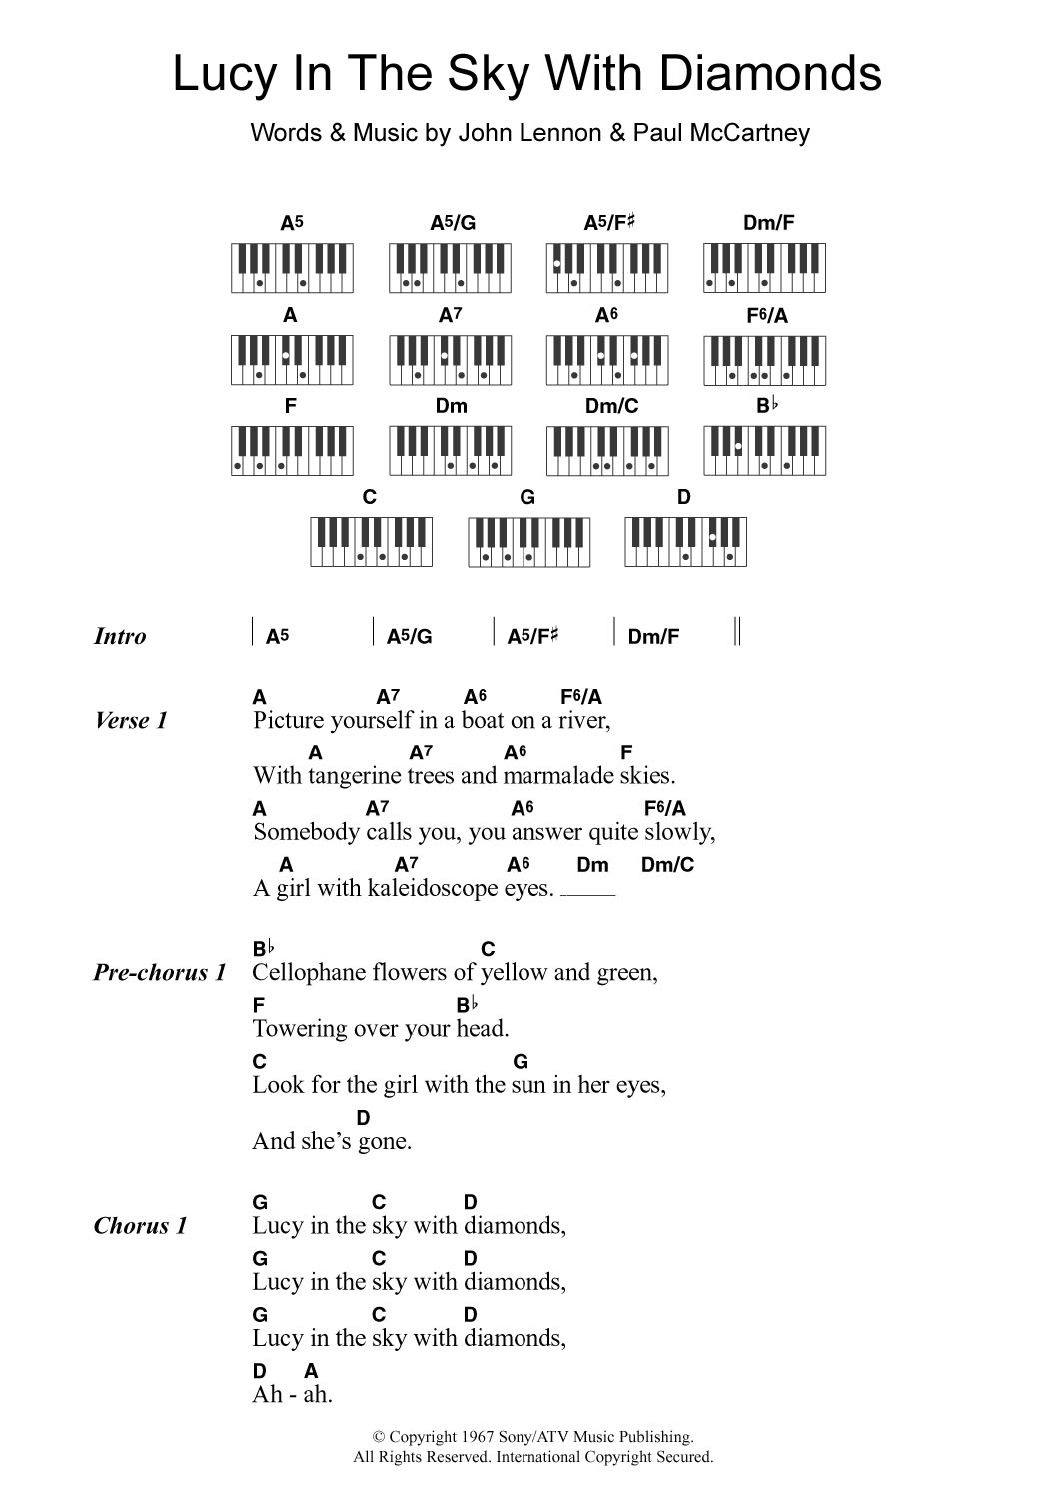 Lucy In The Sky With Diamonds Sheet Music   The Beatles   Piano  Chords/Lyrics